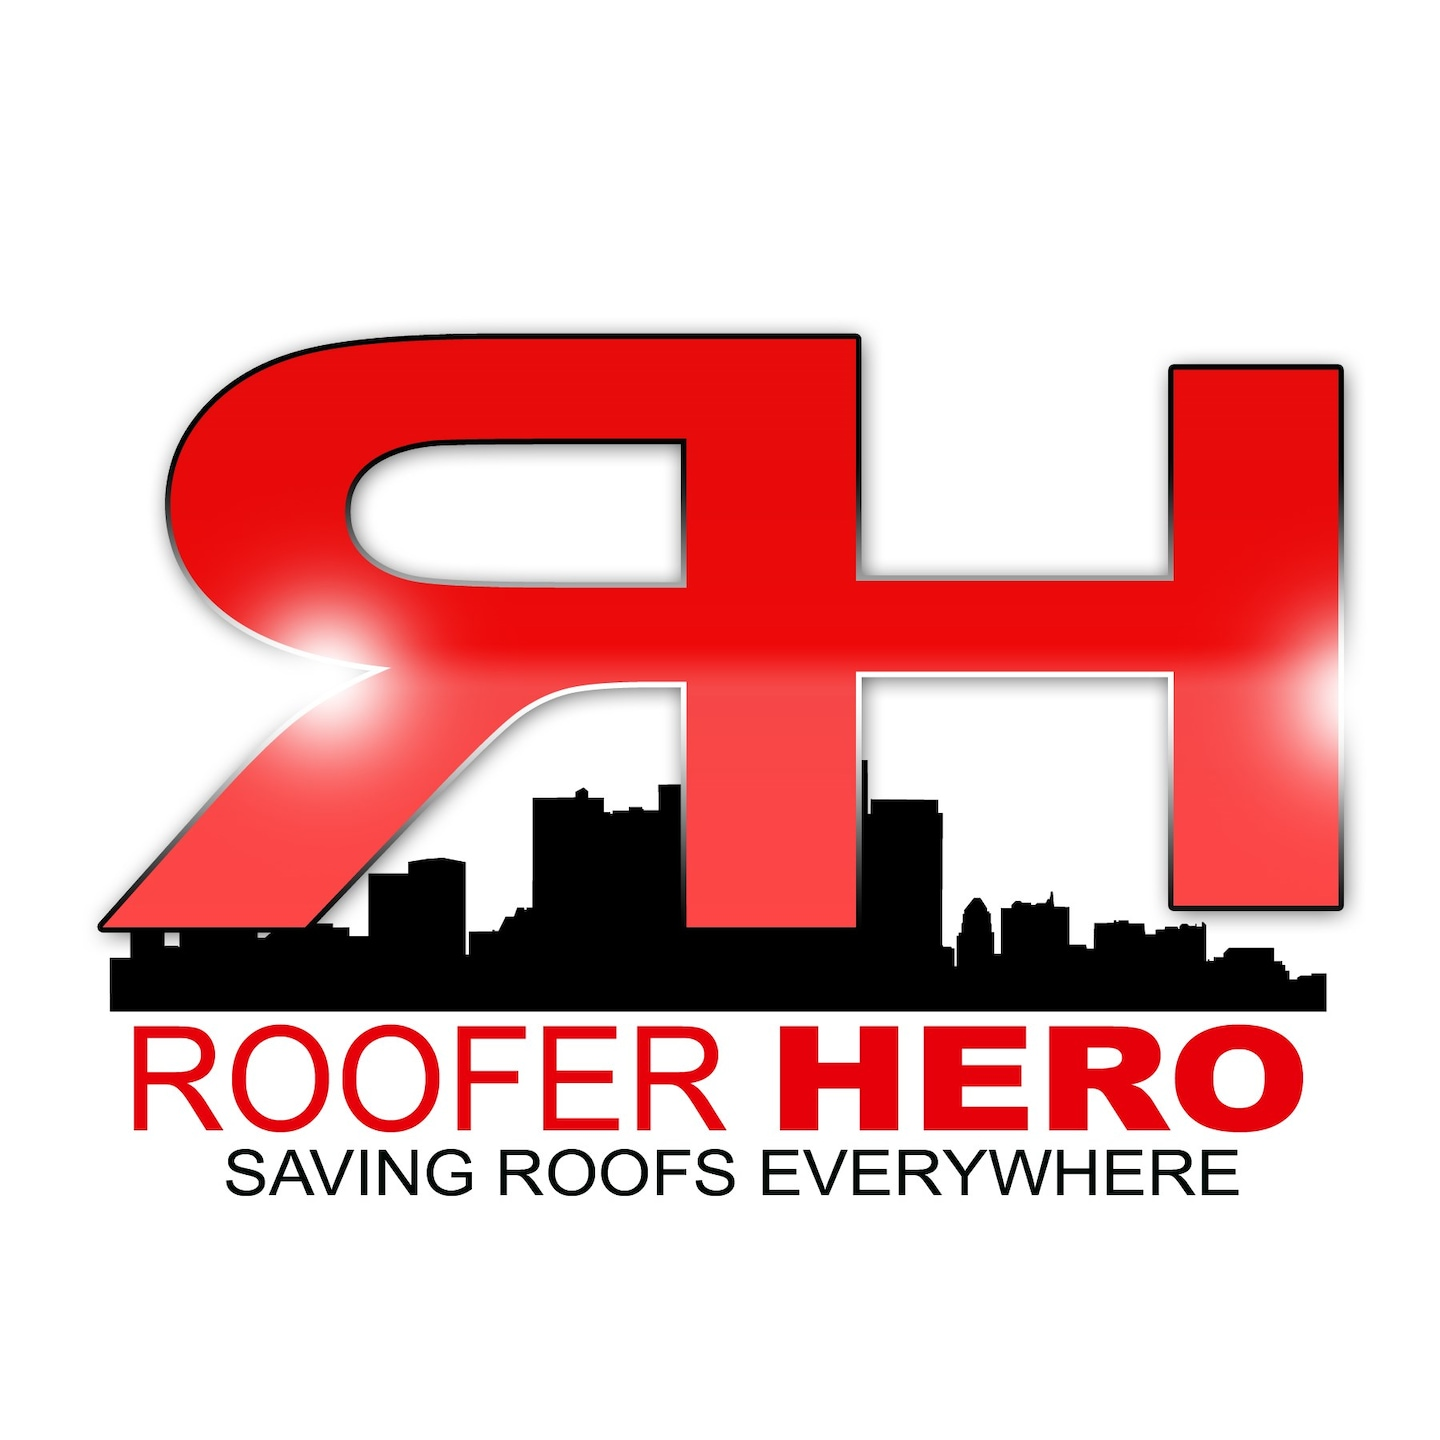 Roofing Services Roofer Hero